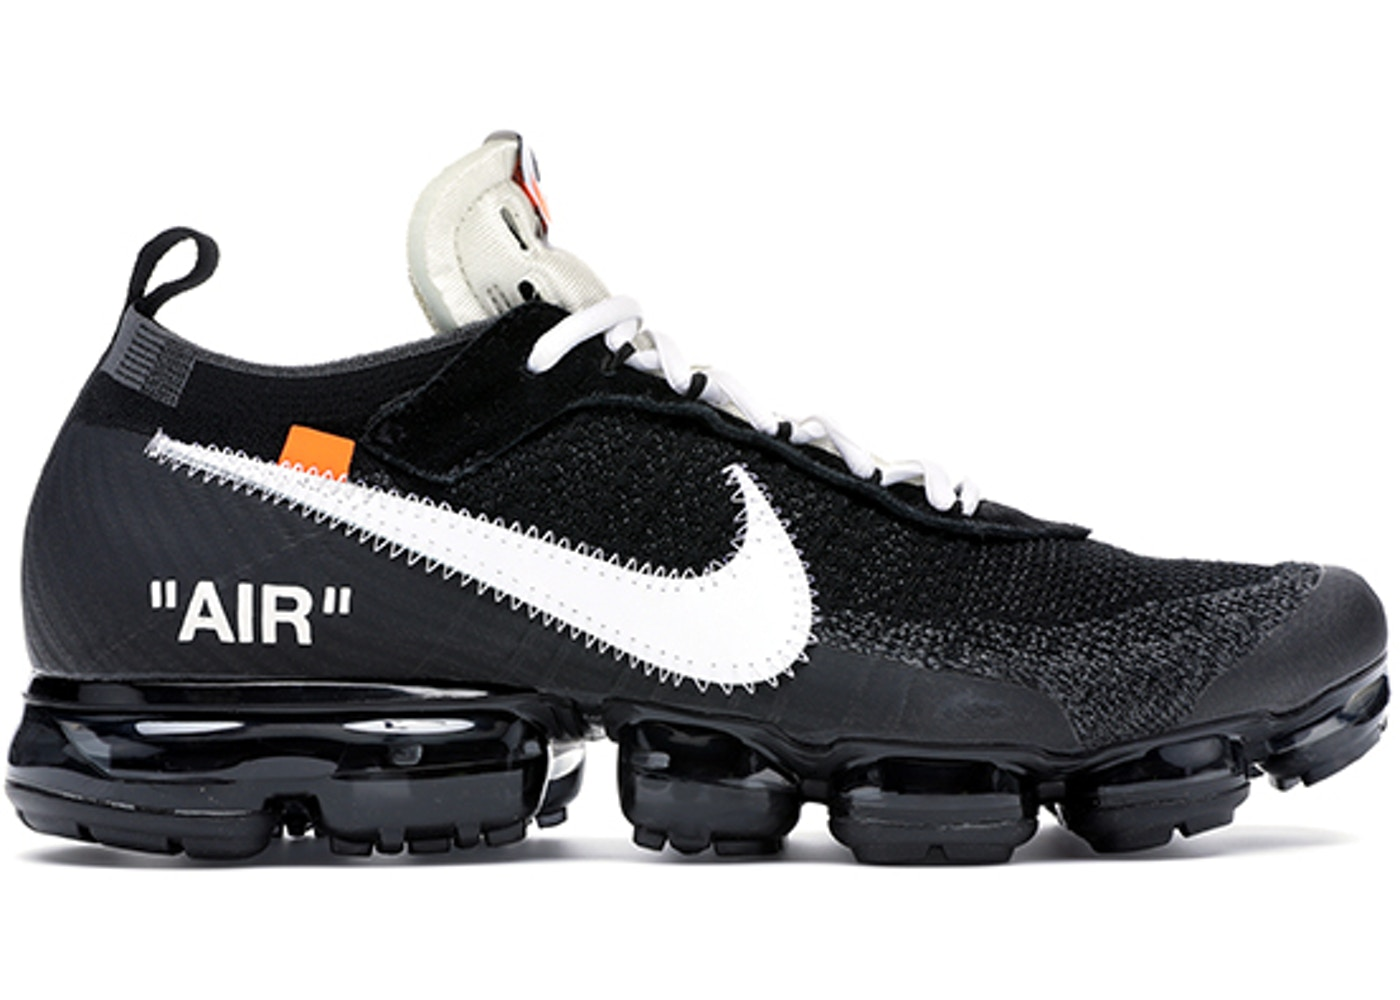 3c4f242e5a7d5 Air VaporMax Off-White - AA3831-001